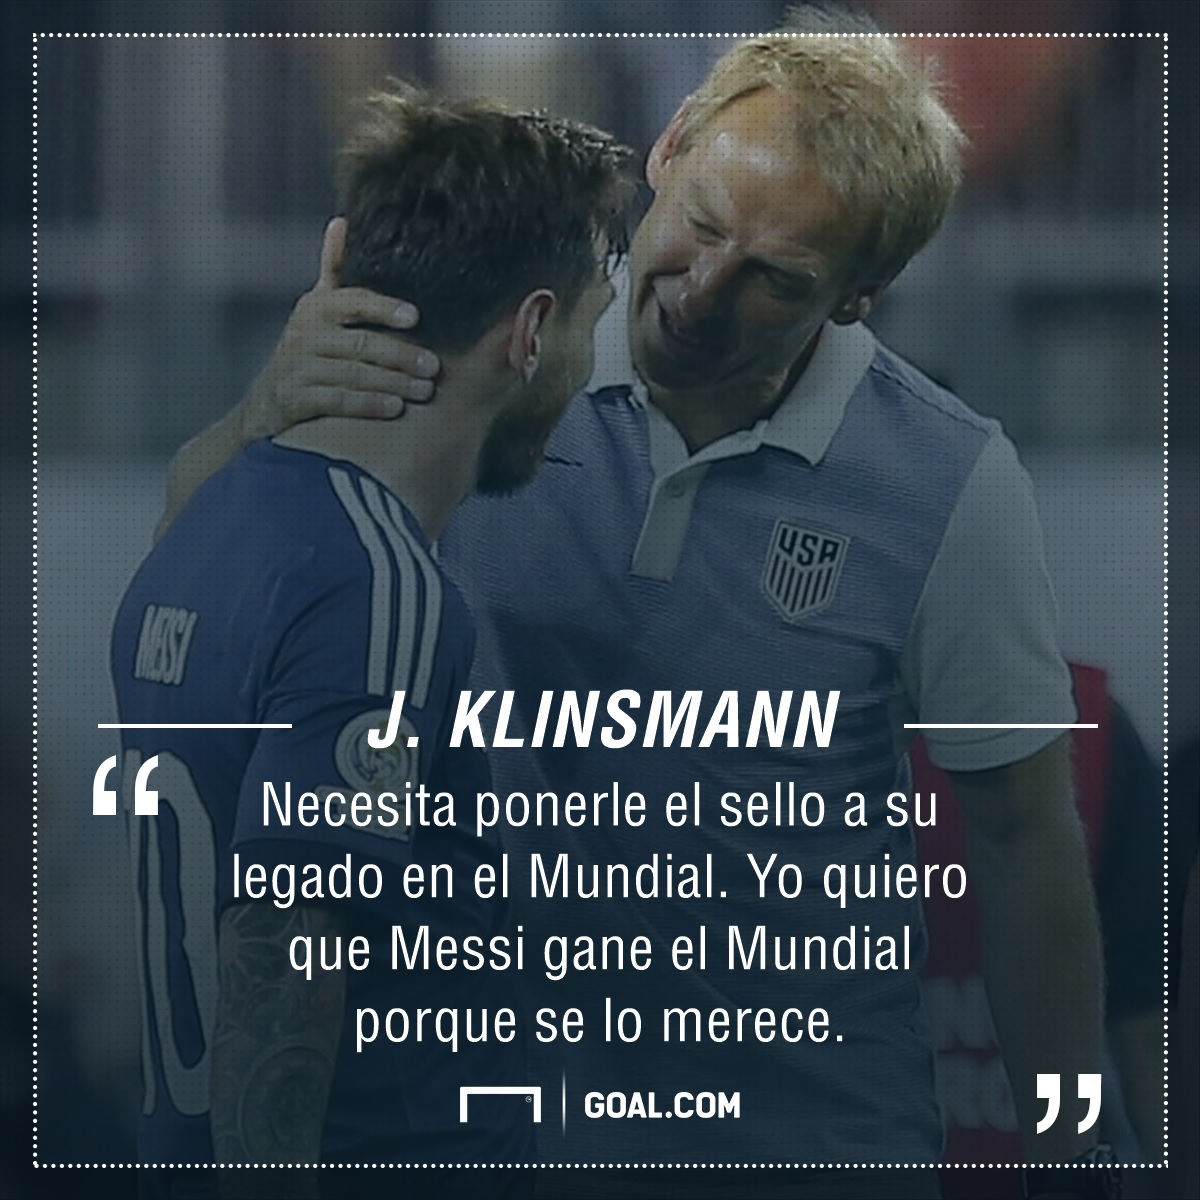 Klinsmann Messi PS